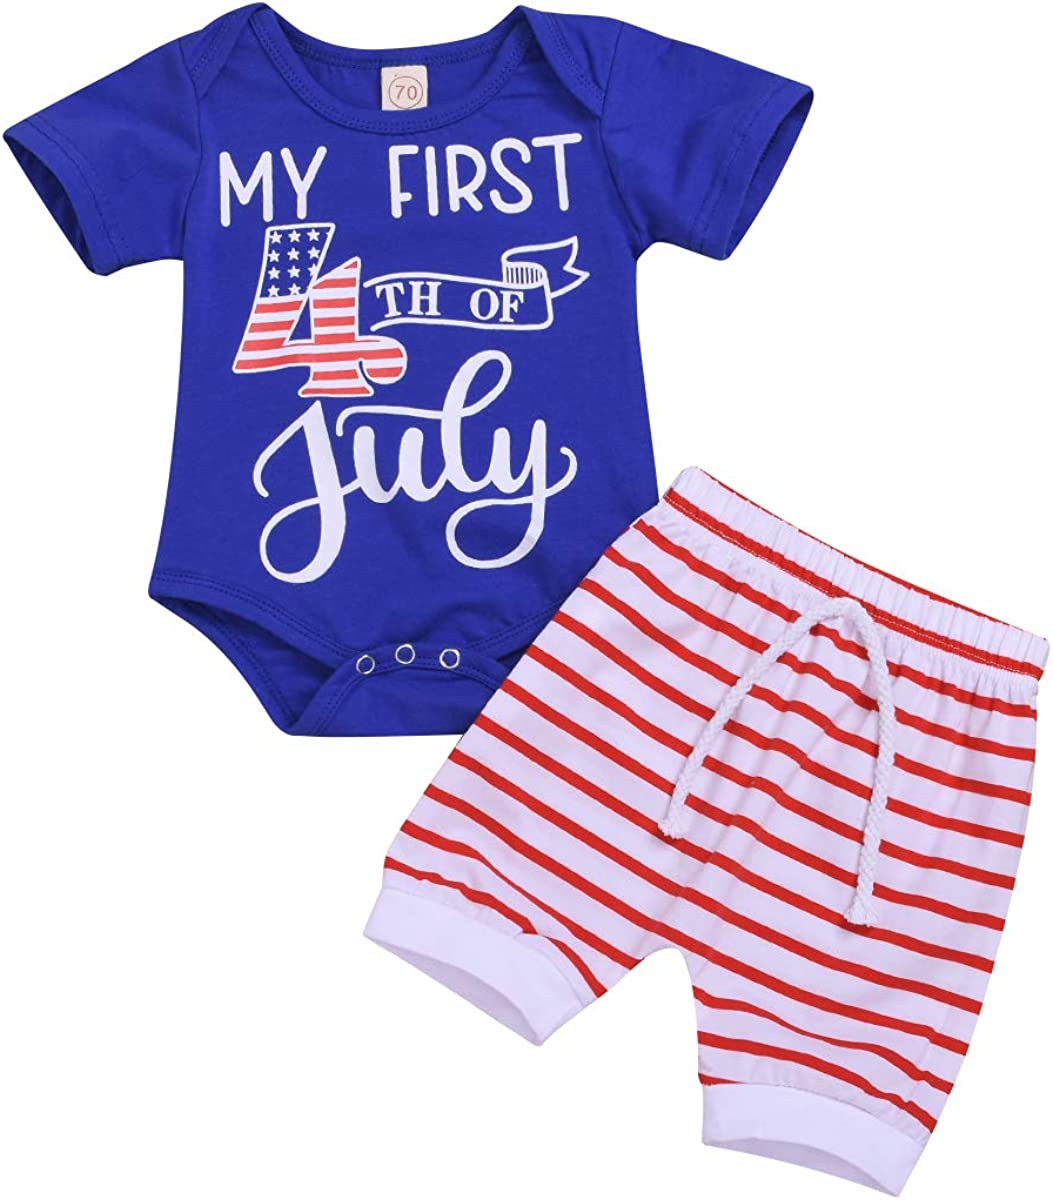 Carters Baby Infant My First 4th Fourth of July Red Shirt Top 3 12 Months NEW